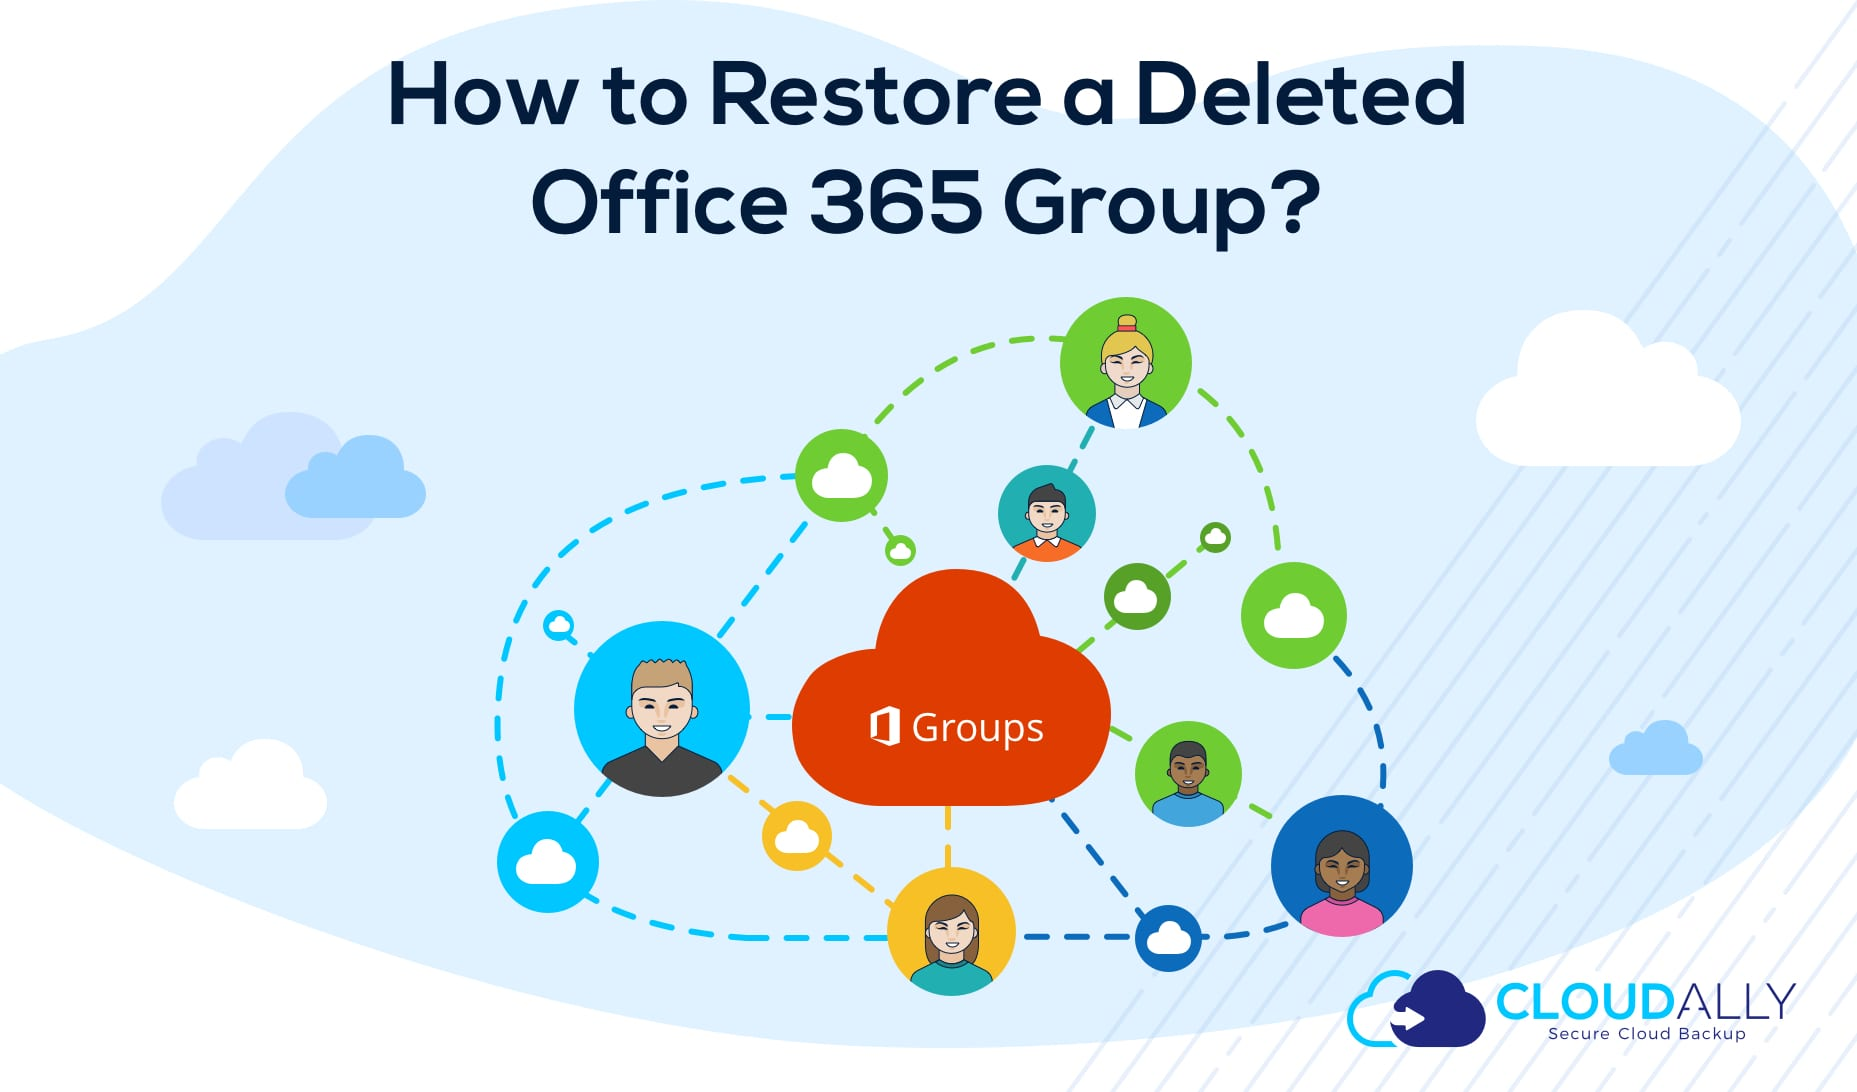 how to Restore a Deleted Office 365 Group using PowerShell ?